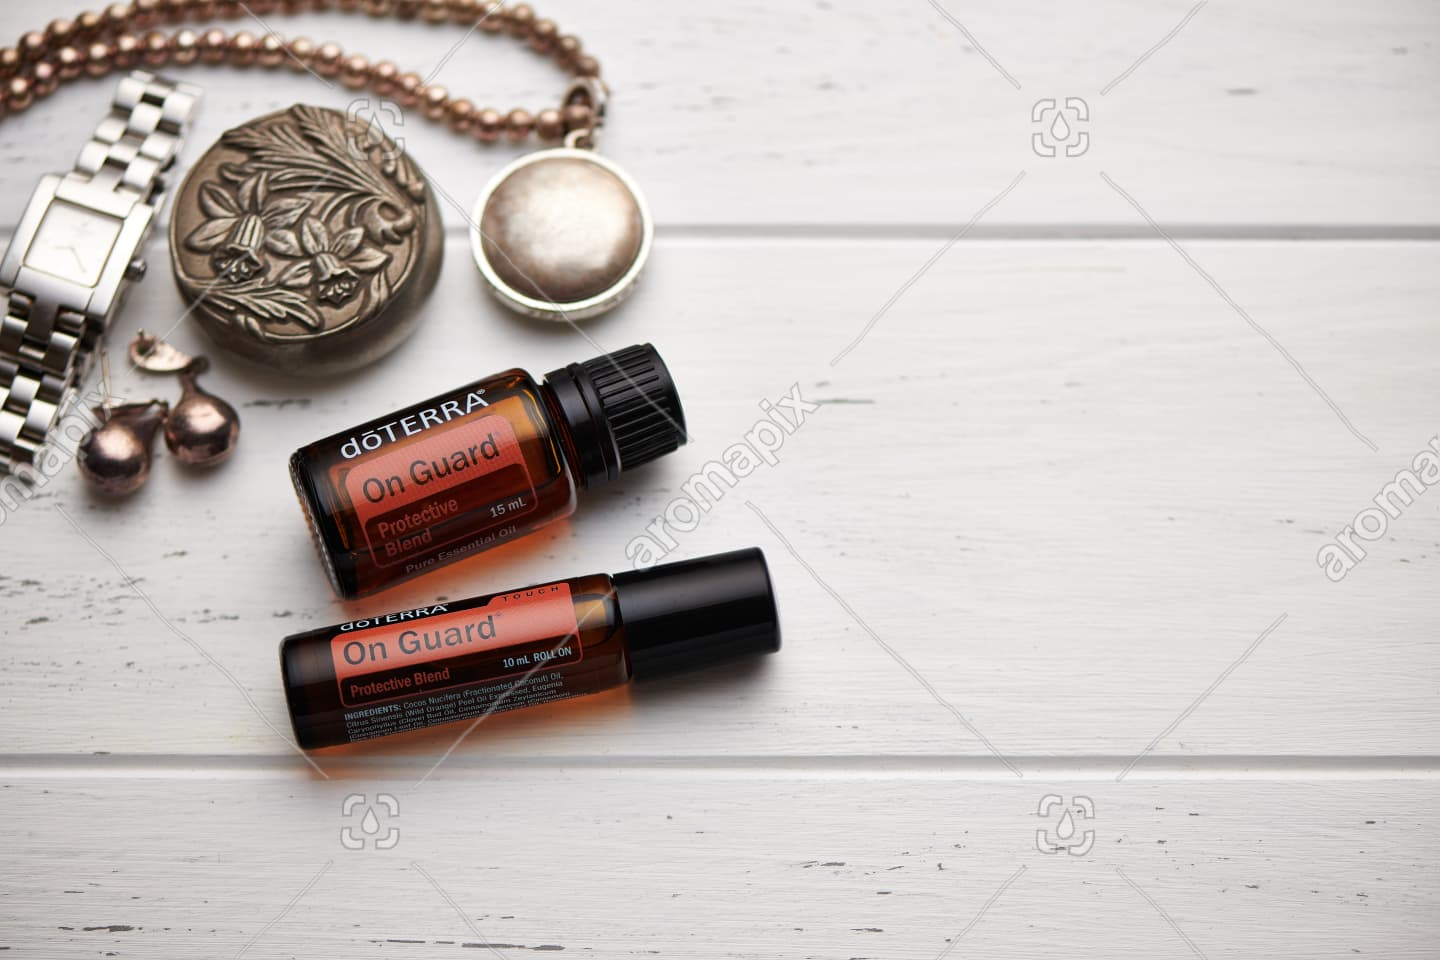 doTERRA On Guard and On Guard Touch on rustic background